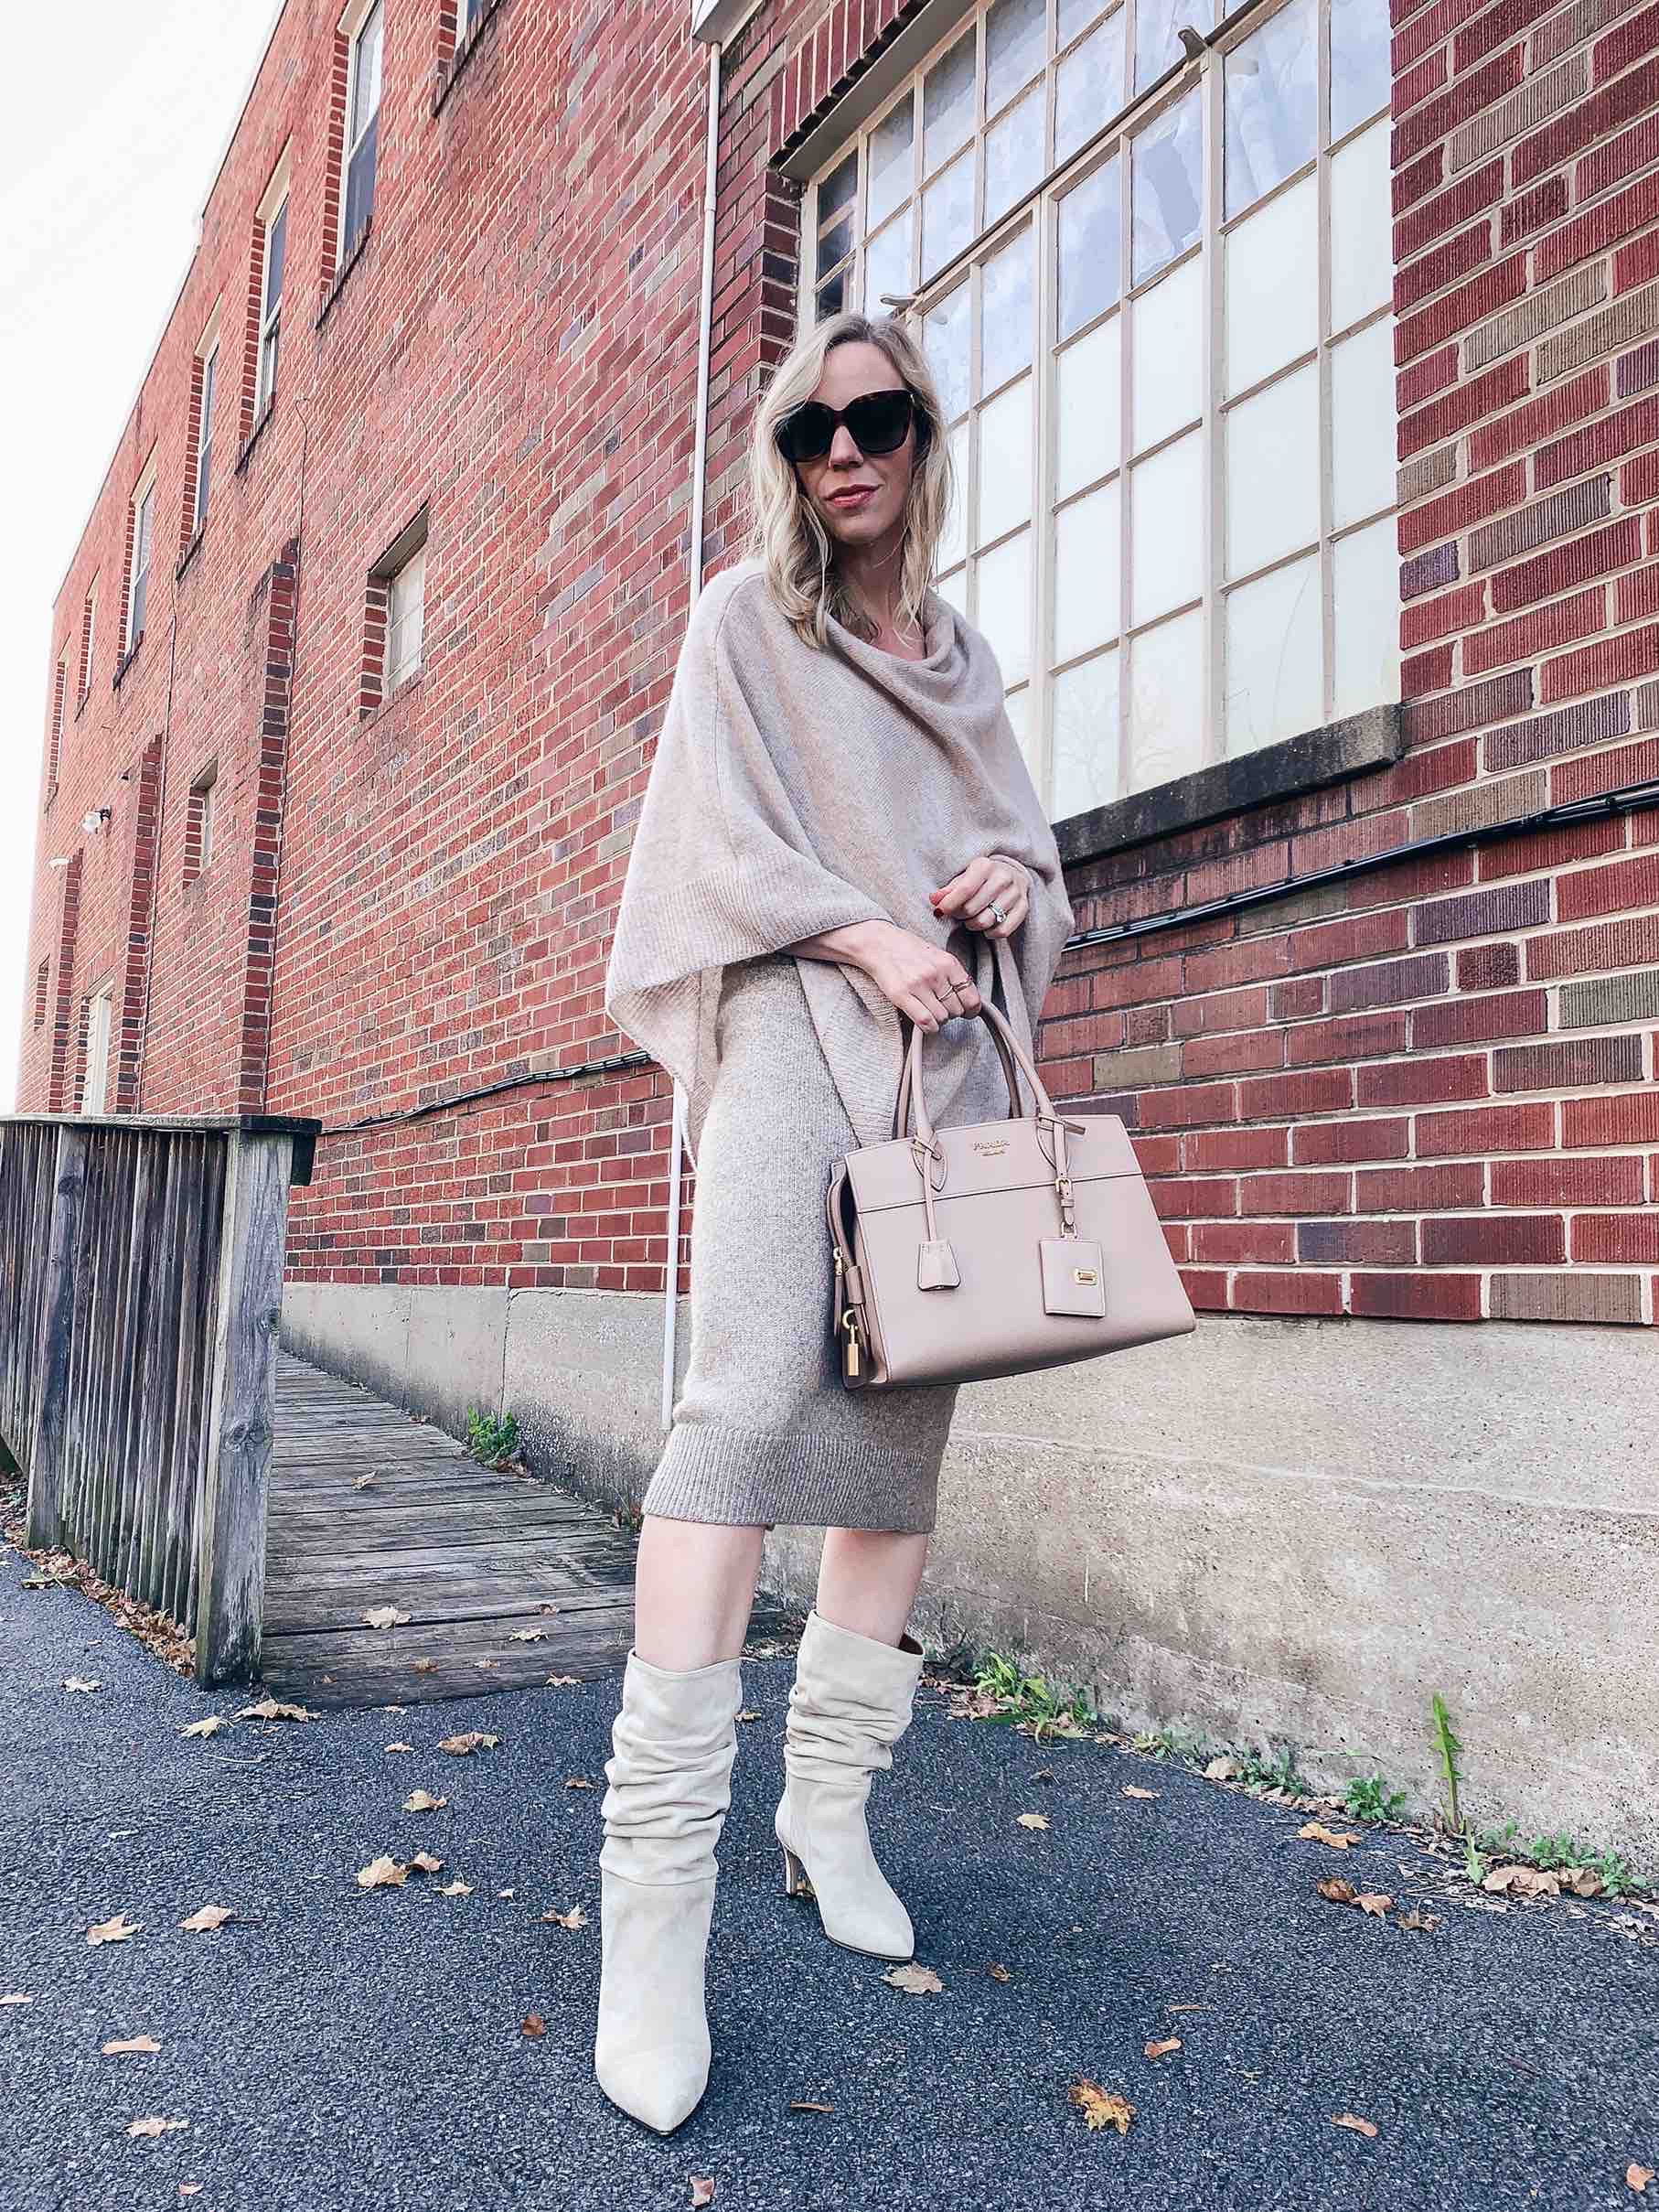 Trending for Fall 2020: Slouchy Boots